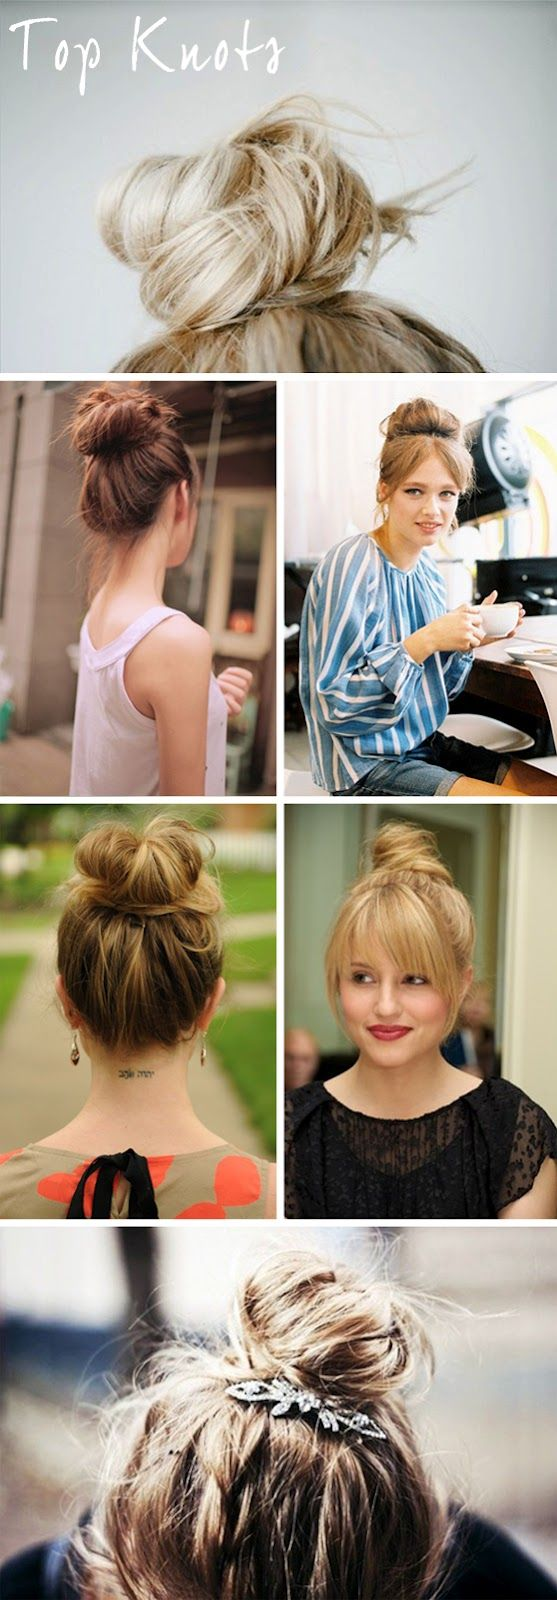 Top Knots: High Buns, Knot Buns, Long Hair, Messy Buns, Hair Style, Summer Hairstyles, Hair Buns, Tops Knot, My Style